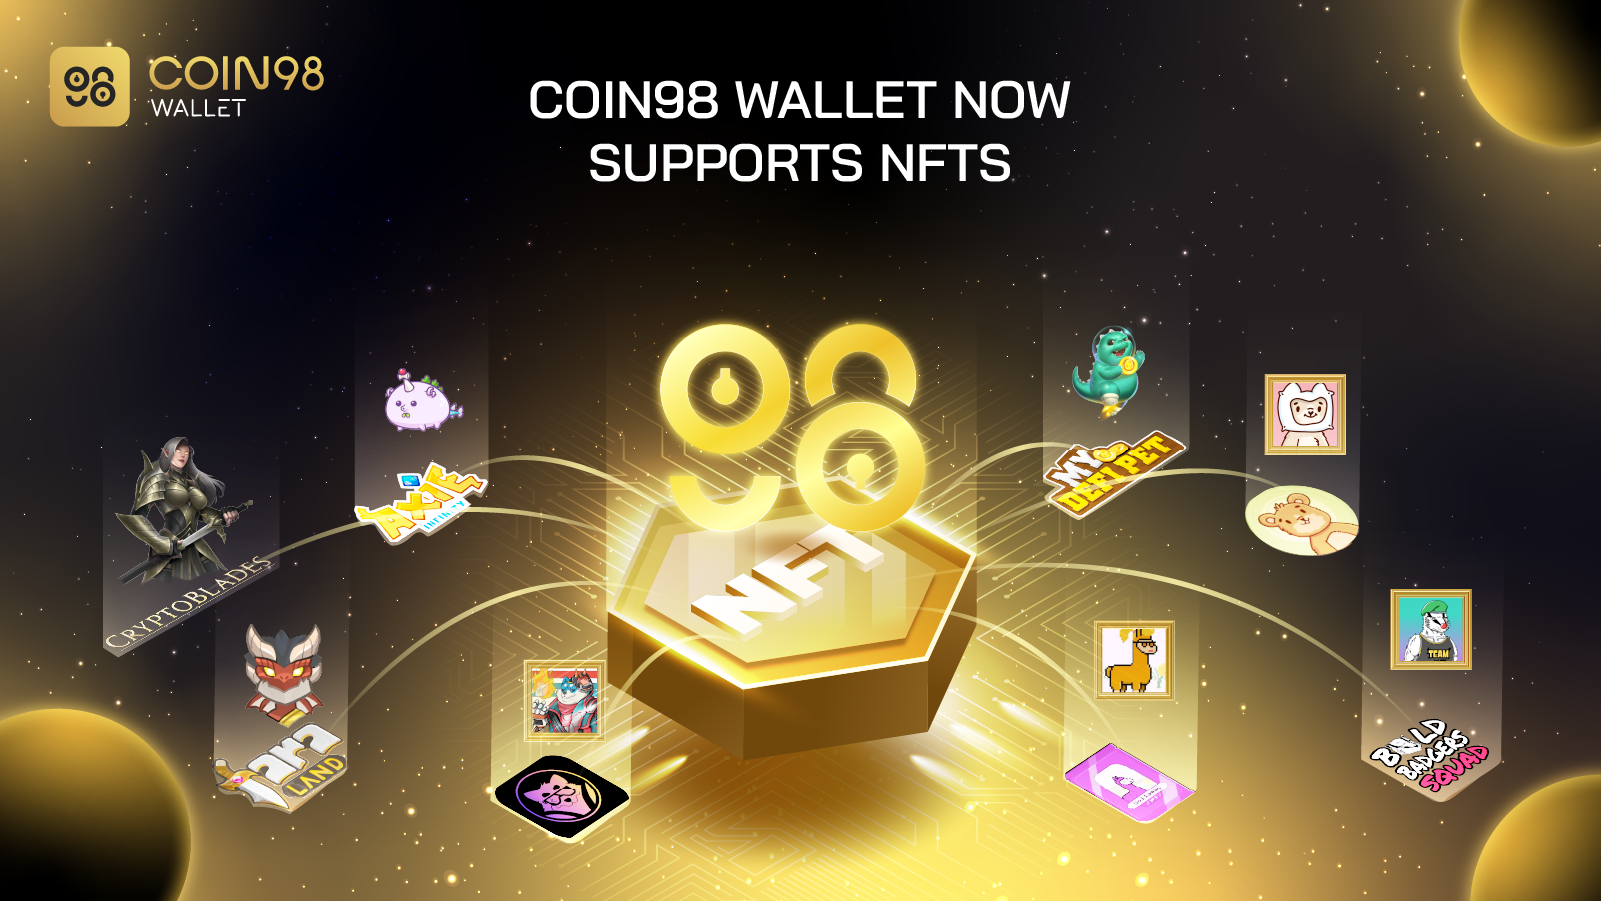 Coin98 Wallet supported NFT